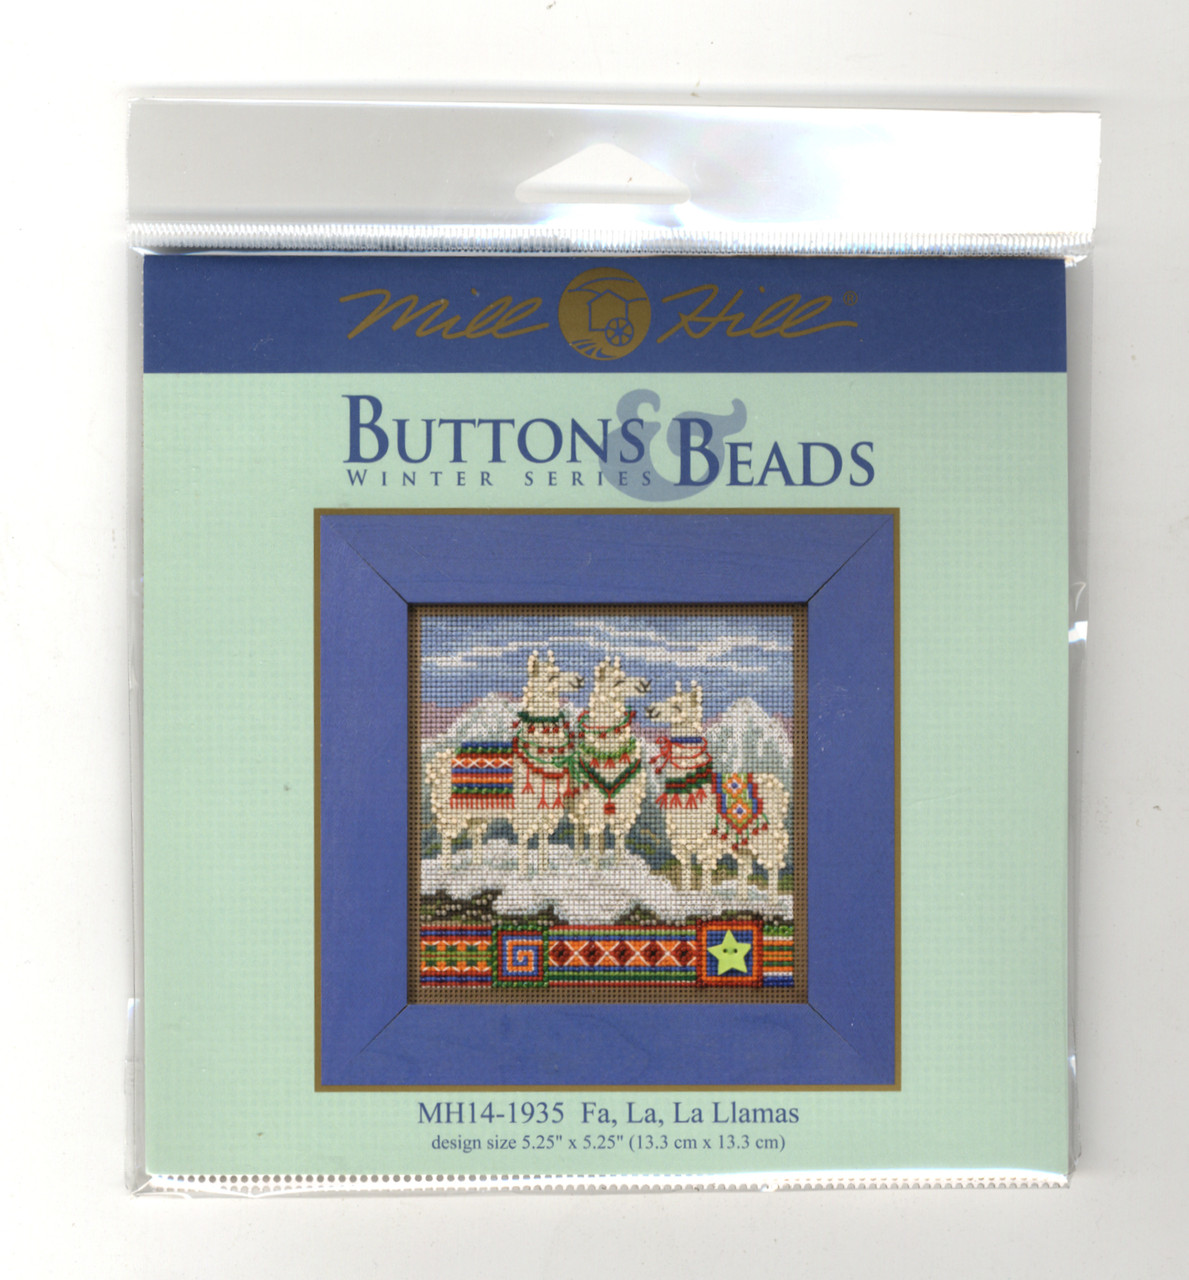 FA La La Llamas Beaded Counted Cross Stitch Kit Mill Hill Buttons /& Beads 2019 Winter Series MH141935